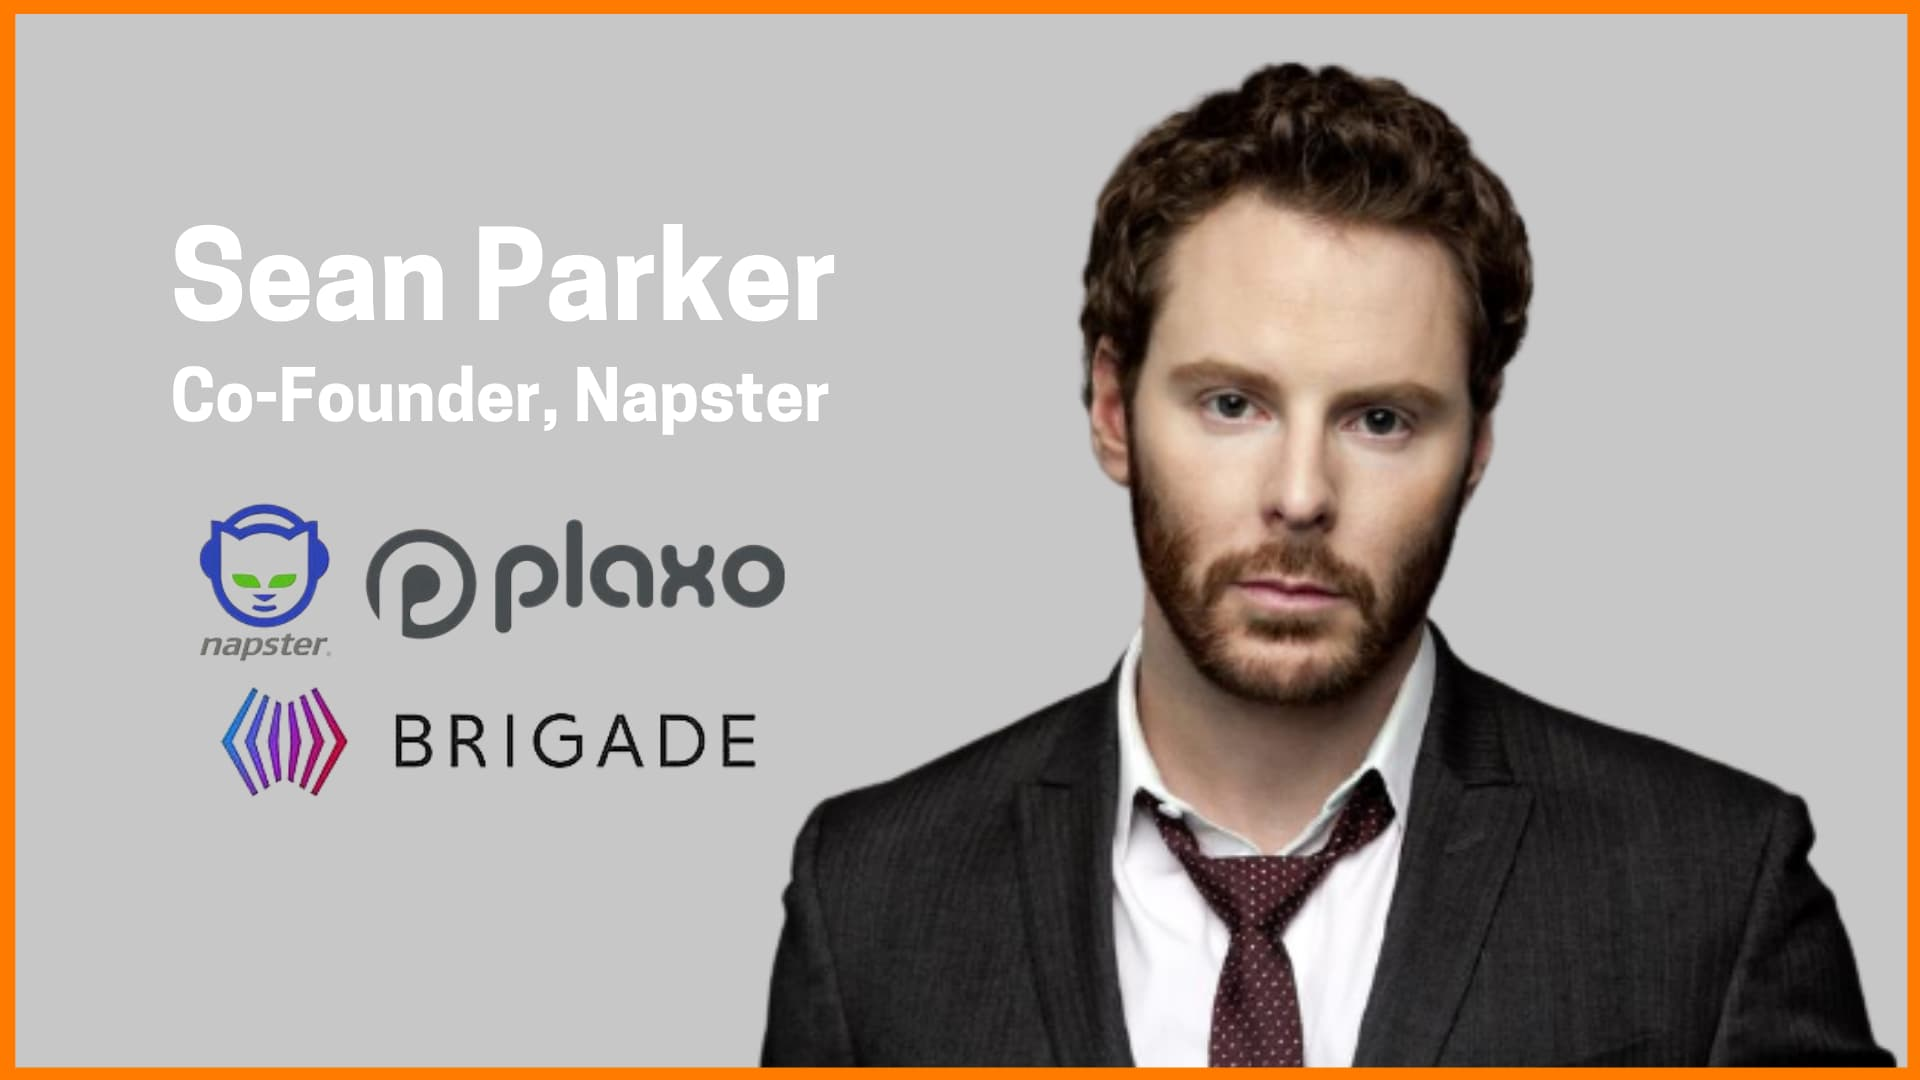 Meet Facebook's First President Sean Parker | Co-Founder of Napster